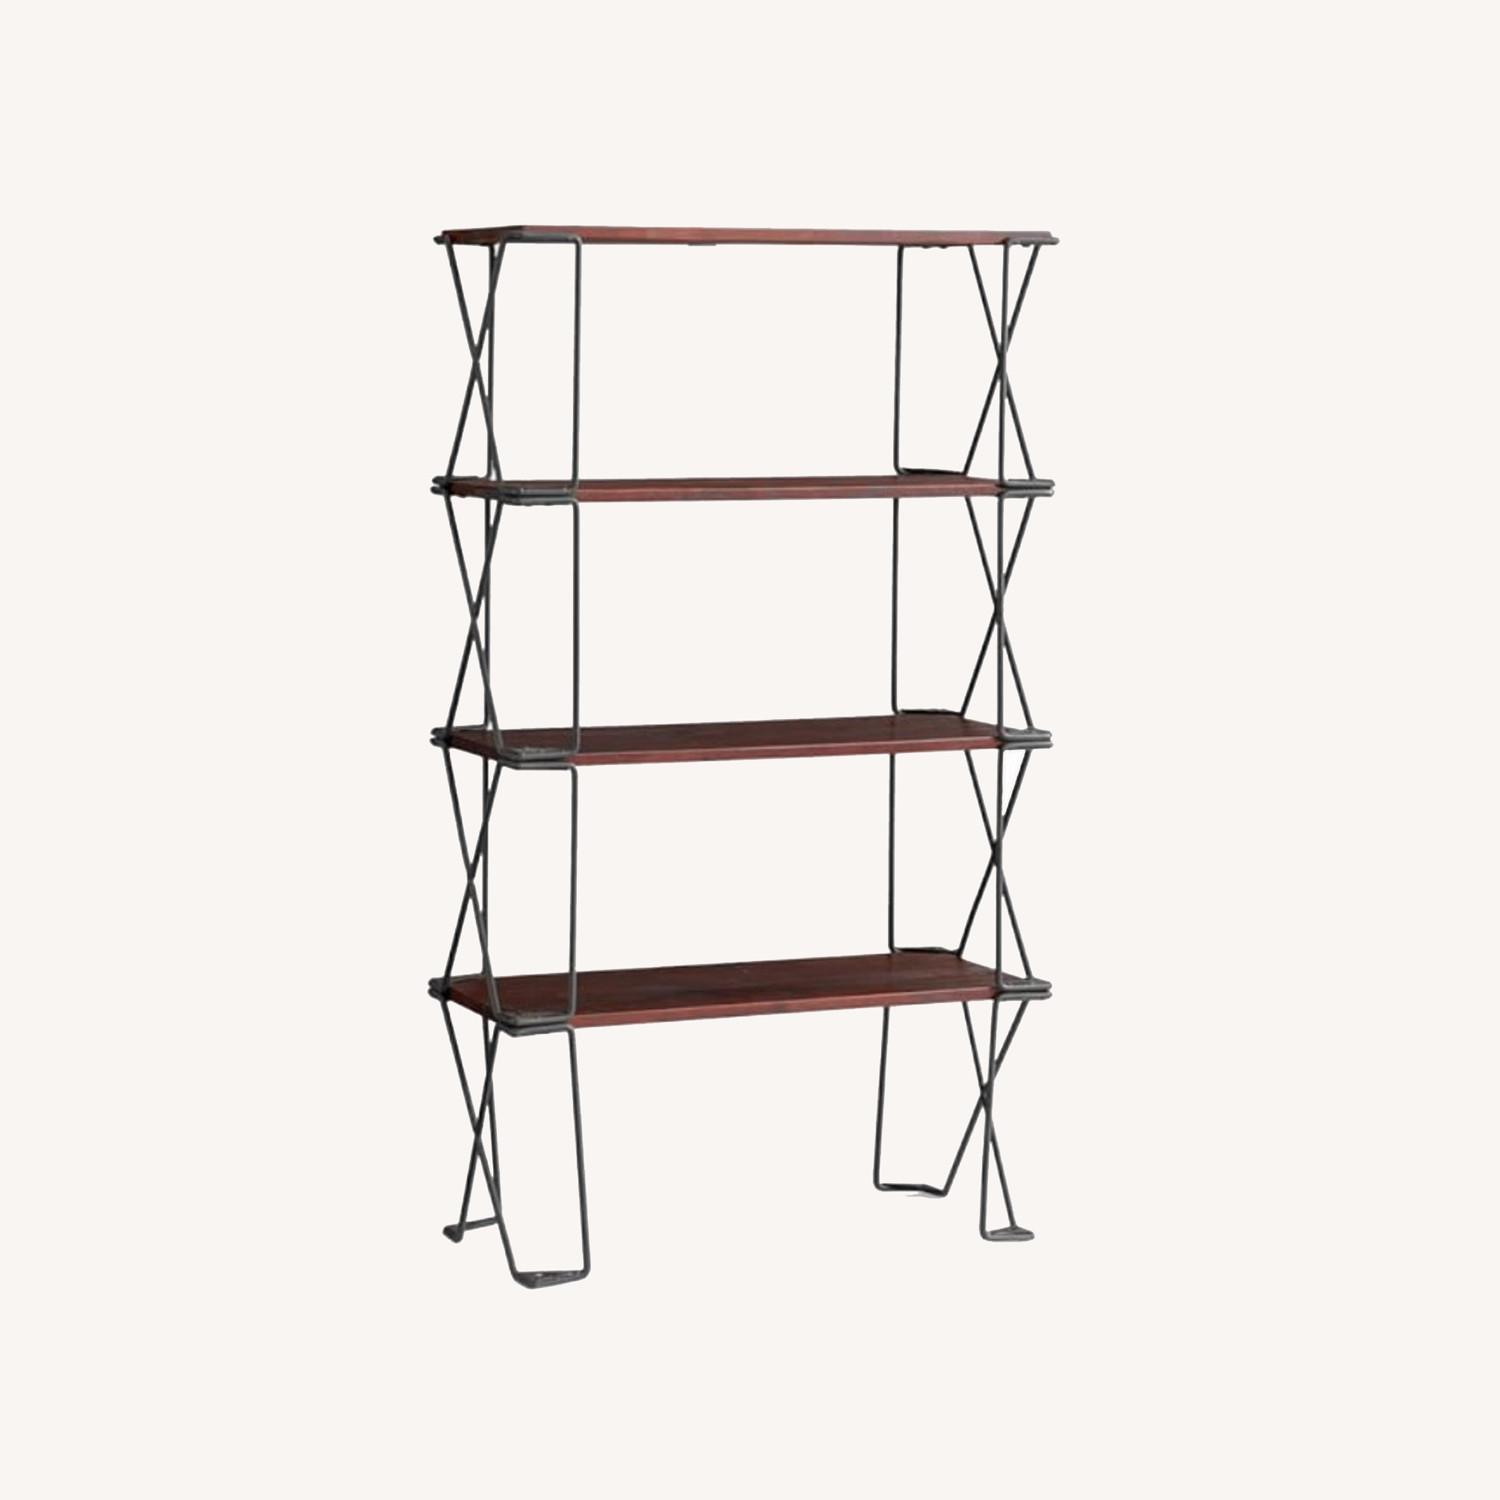 Pottery Barn Set of Dublin Modular Etagere Bookcases - image-0